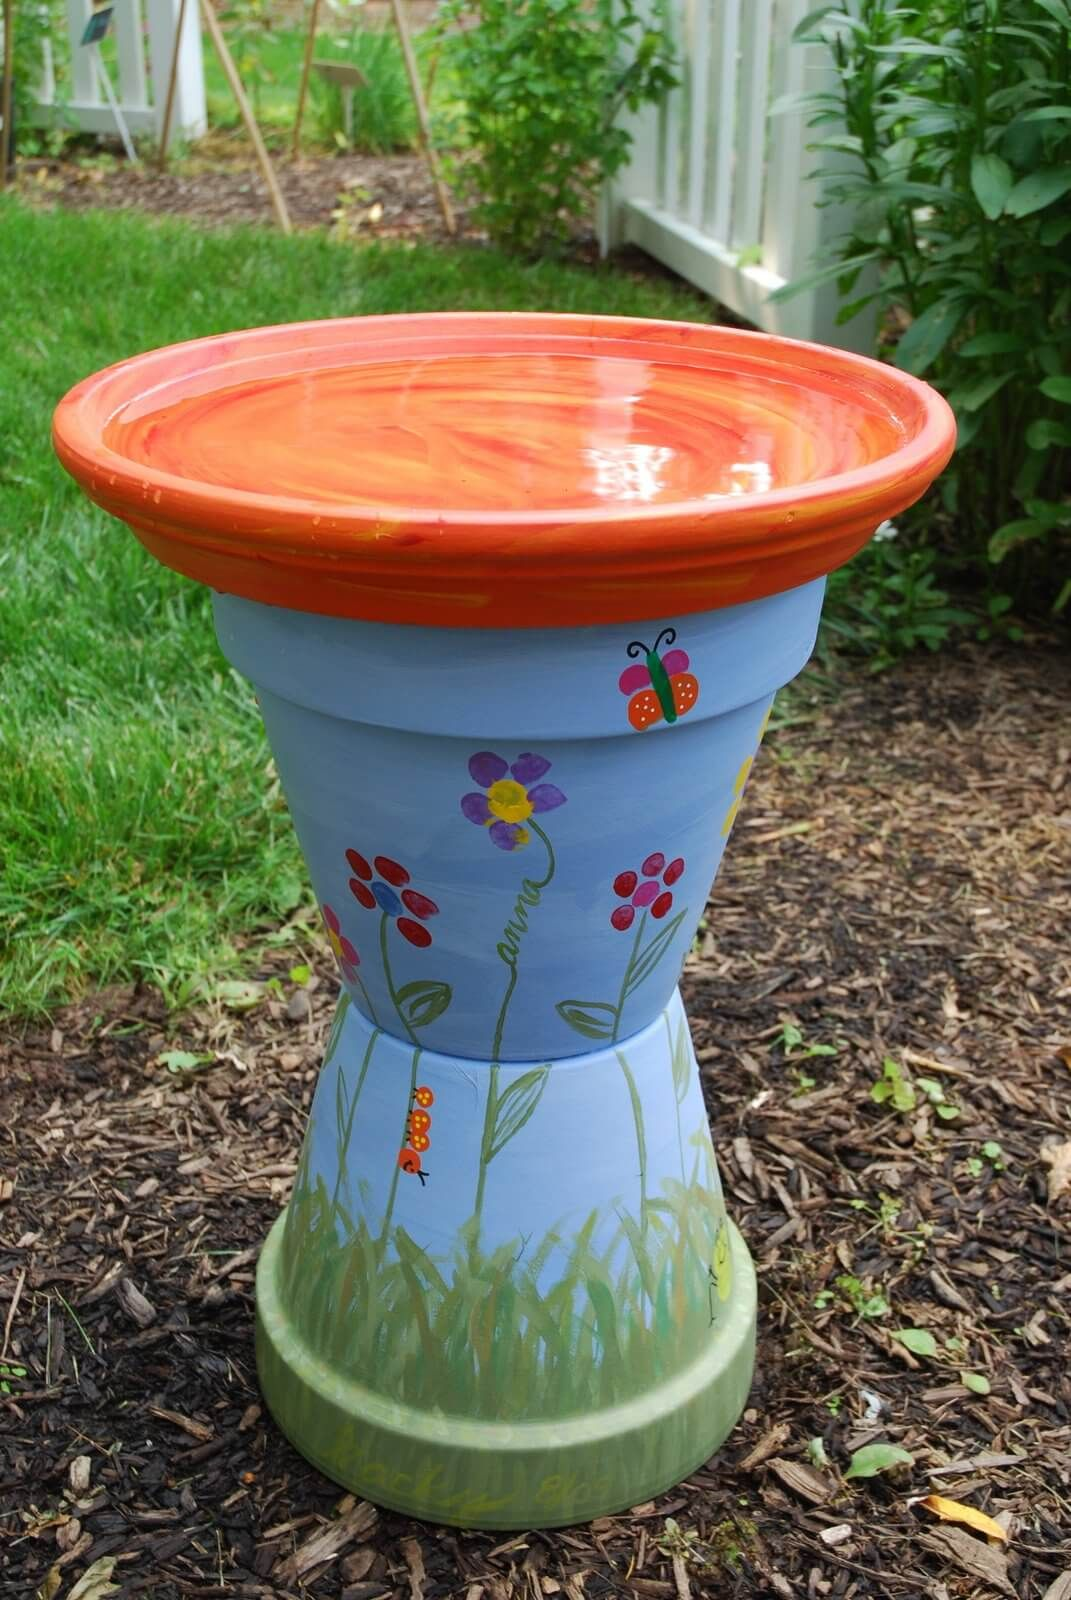 The 11 Best DIY Bird Baths is part of Bird bath garden, Diy bird bath, Bird bath, Pond decorations, Bird garden, Garden crafts - I've hooked you up with The 11 Best DIY Bird Baths to keep birds coming back